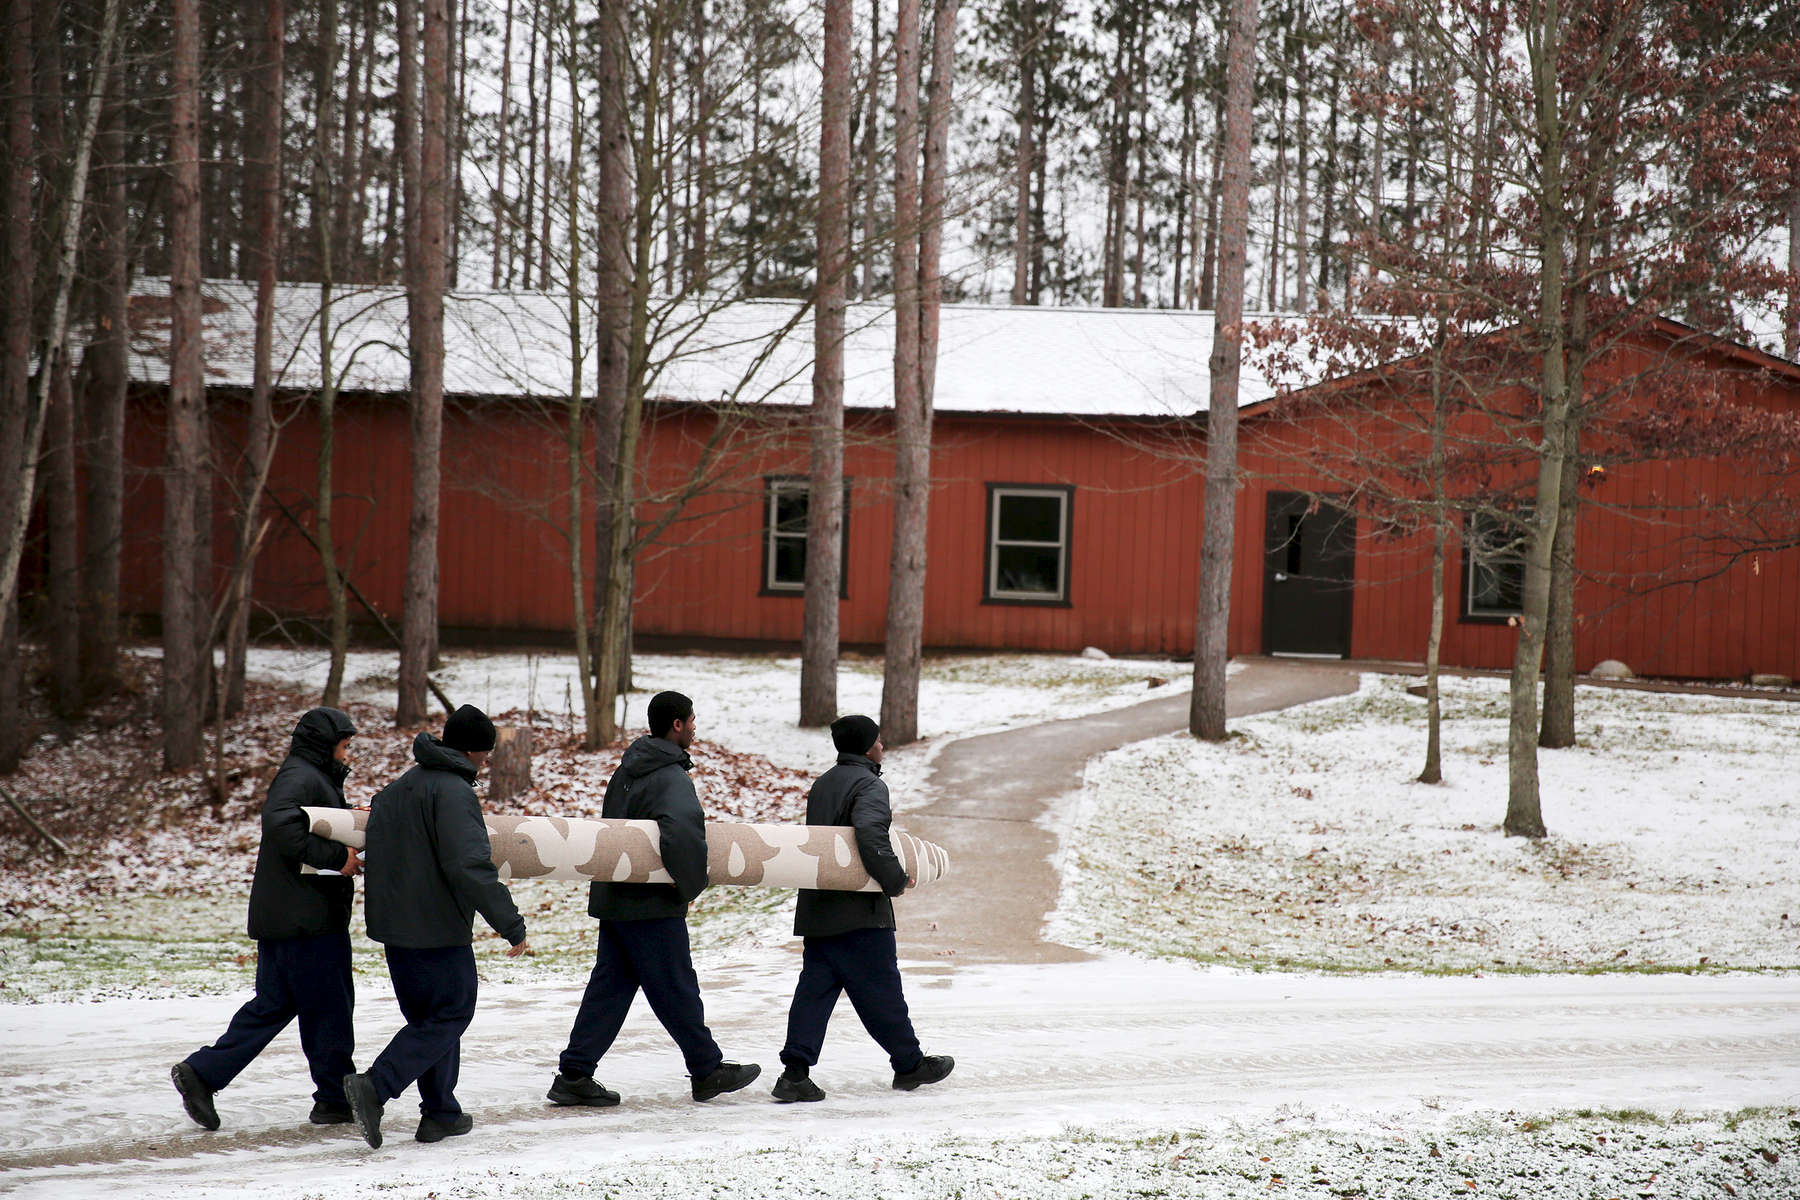 Residents at the Pioneer Work & Learn Center, operated by Wolverine Human Services, carry a rug to be cleaned from their cottage in Vassar, Mich. Court documents show that two staffers testified that they were discouraged from reporting incidents, and fired for contacting officials about trouble.